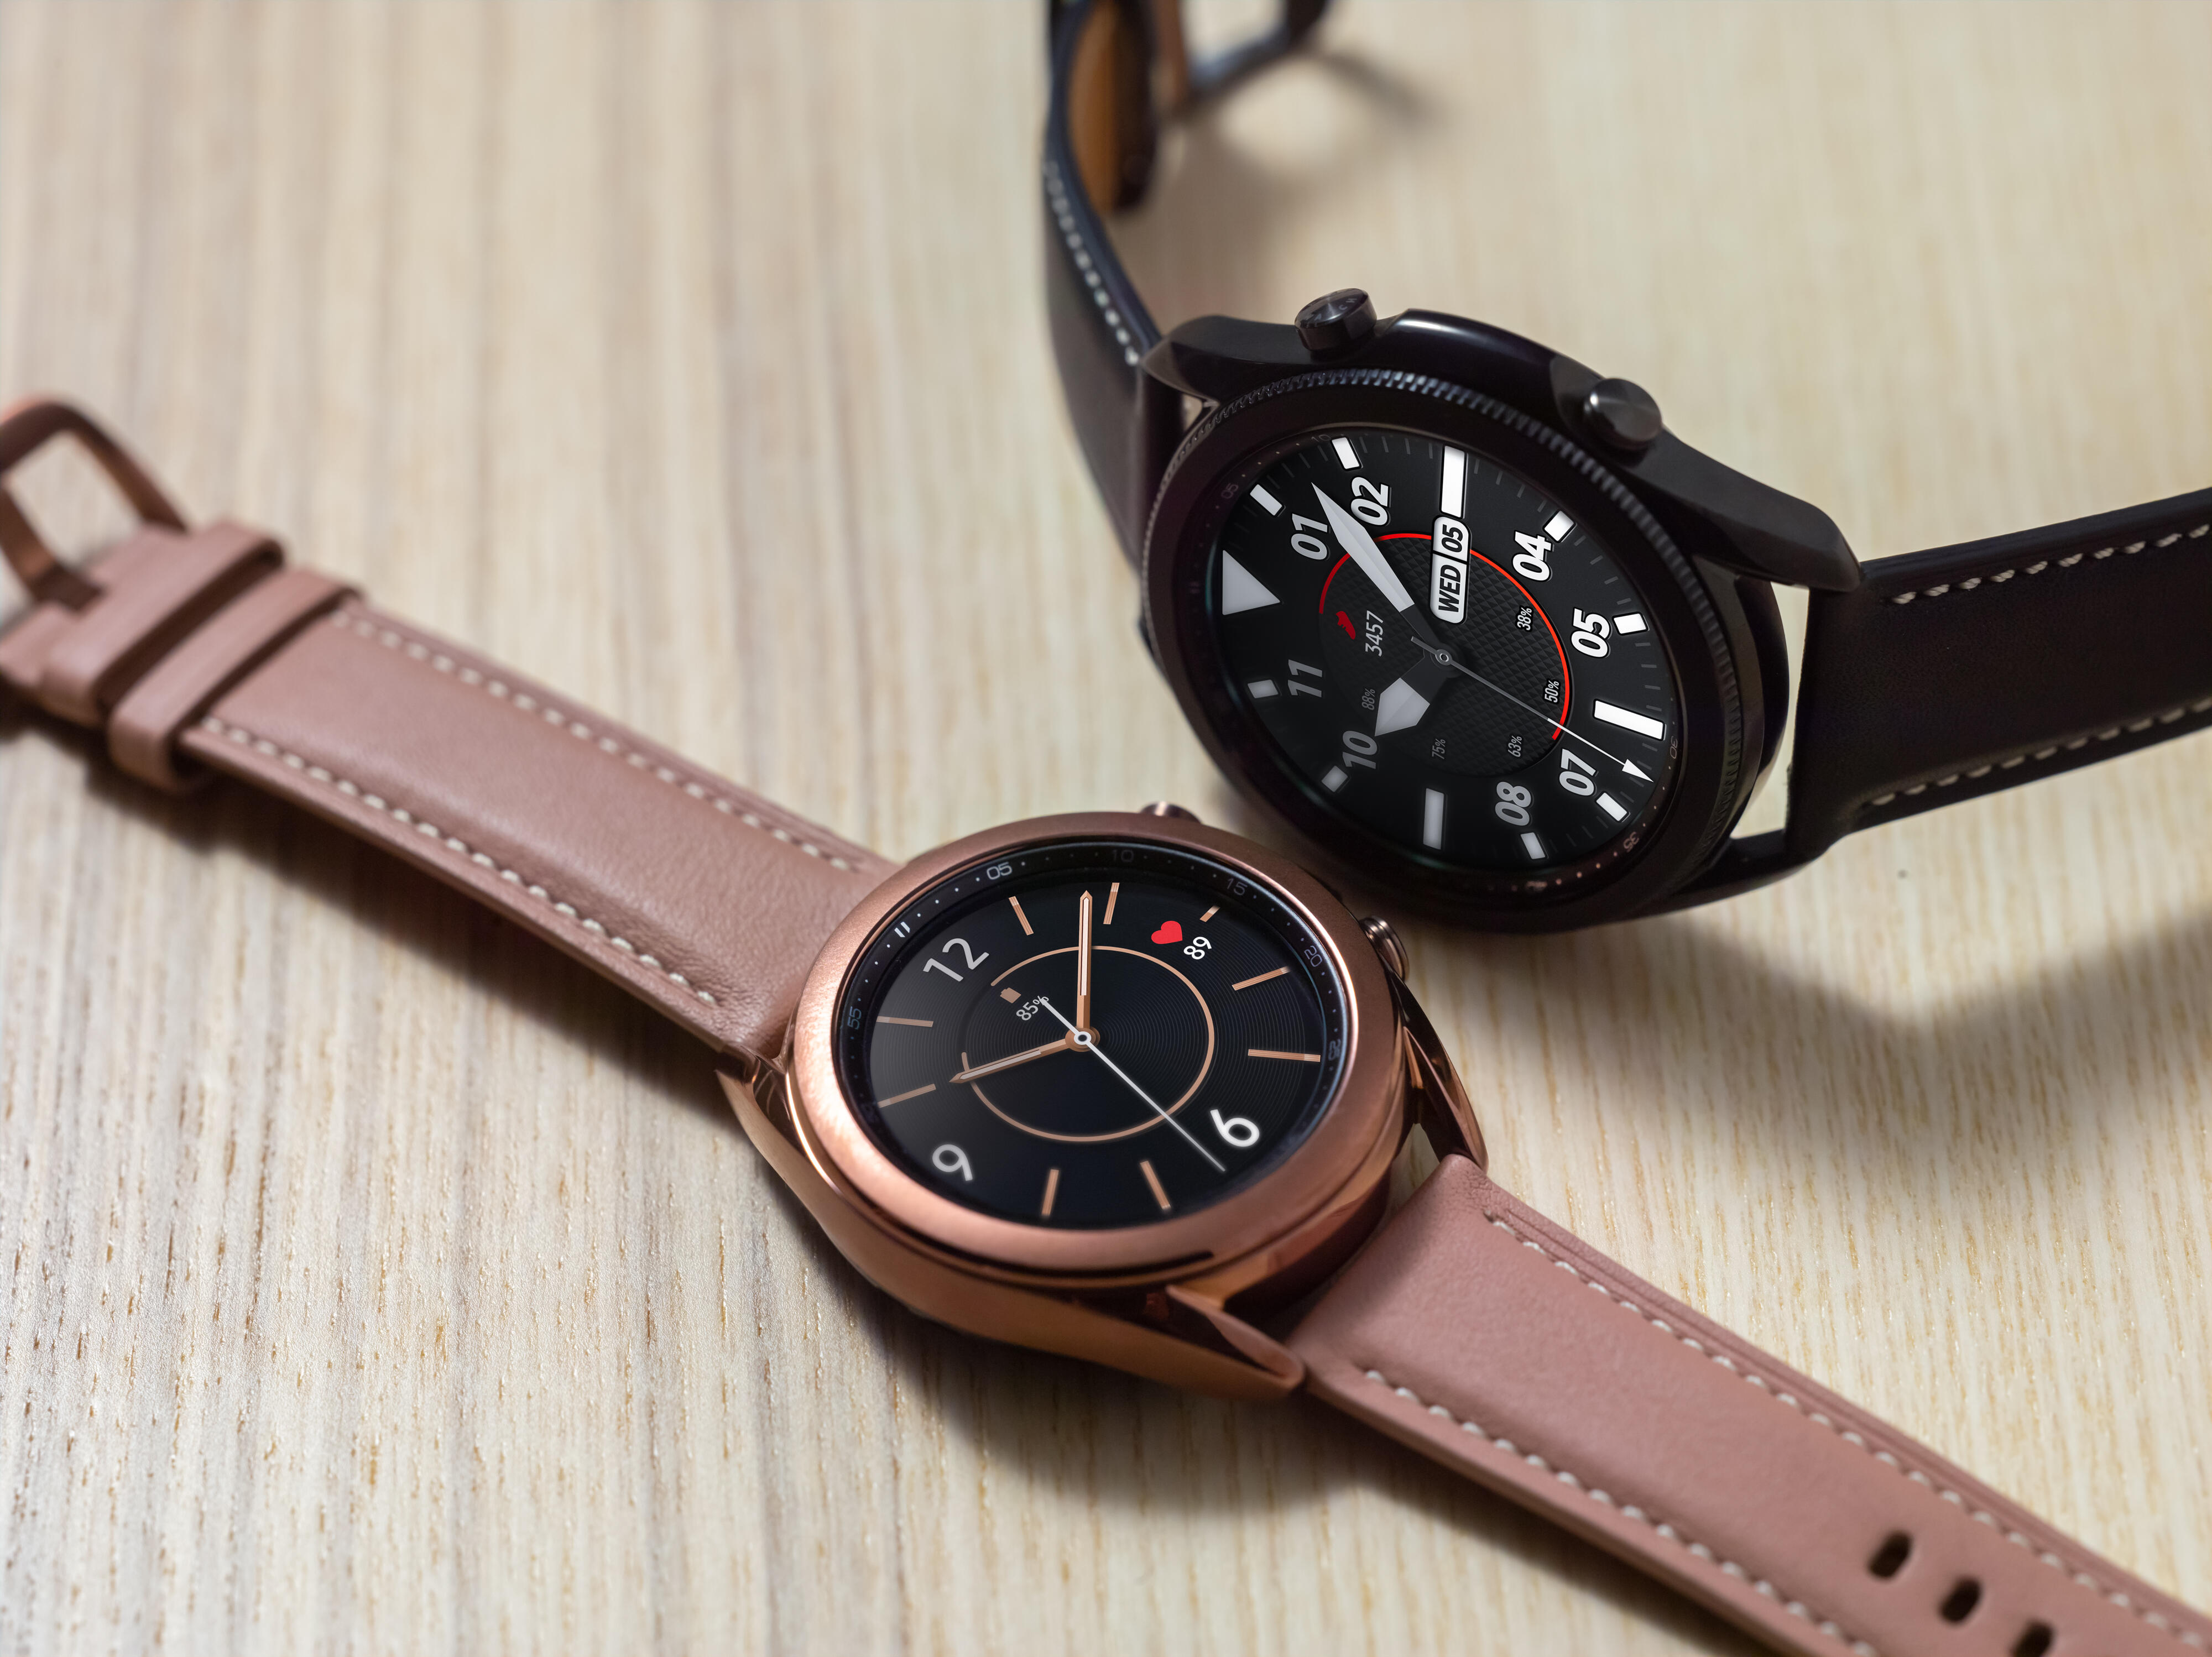 Galaxy Watch 3 vs. Apple Watch Series 5: Similar features, different execution